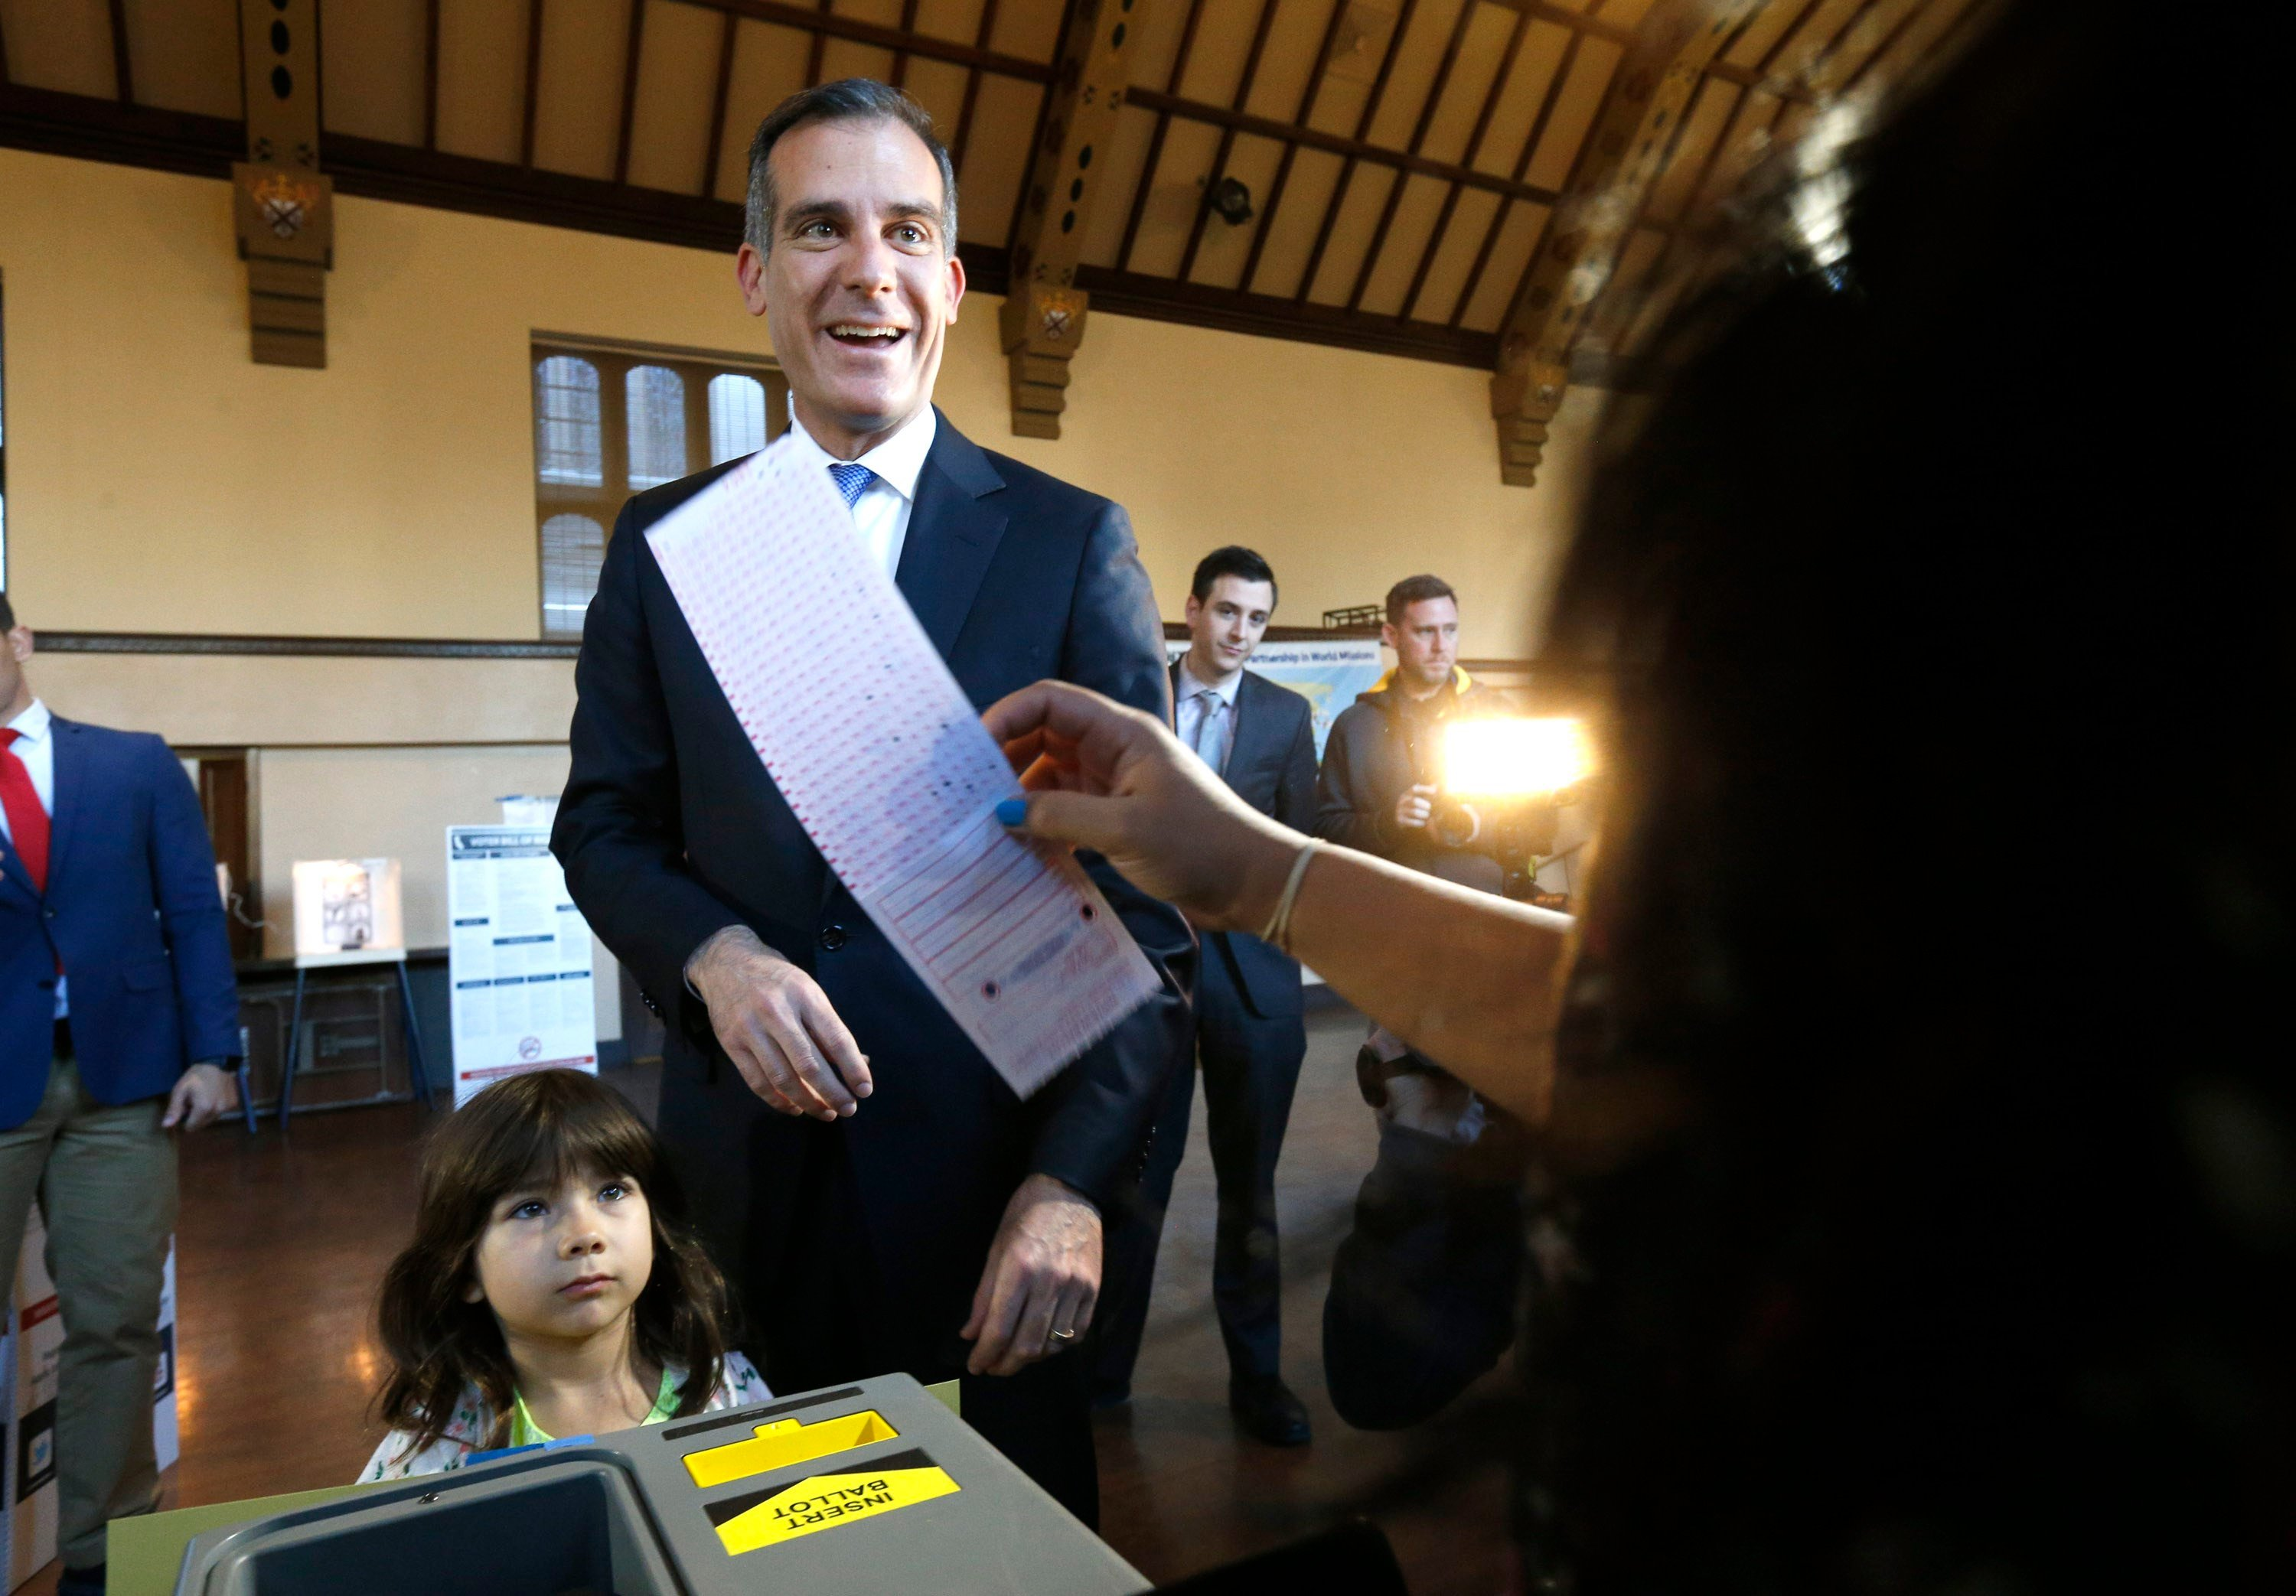 Los Angeles Mayor Eric Garcetti casts his election ballot with his daughter Maya in Los Angeles, on Tuesday, March 7, 2017. (AP Photo/Nick Ut)